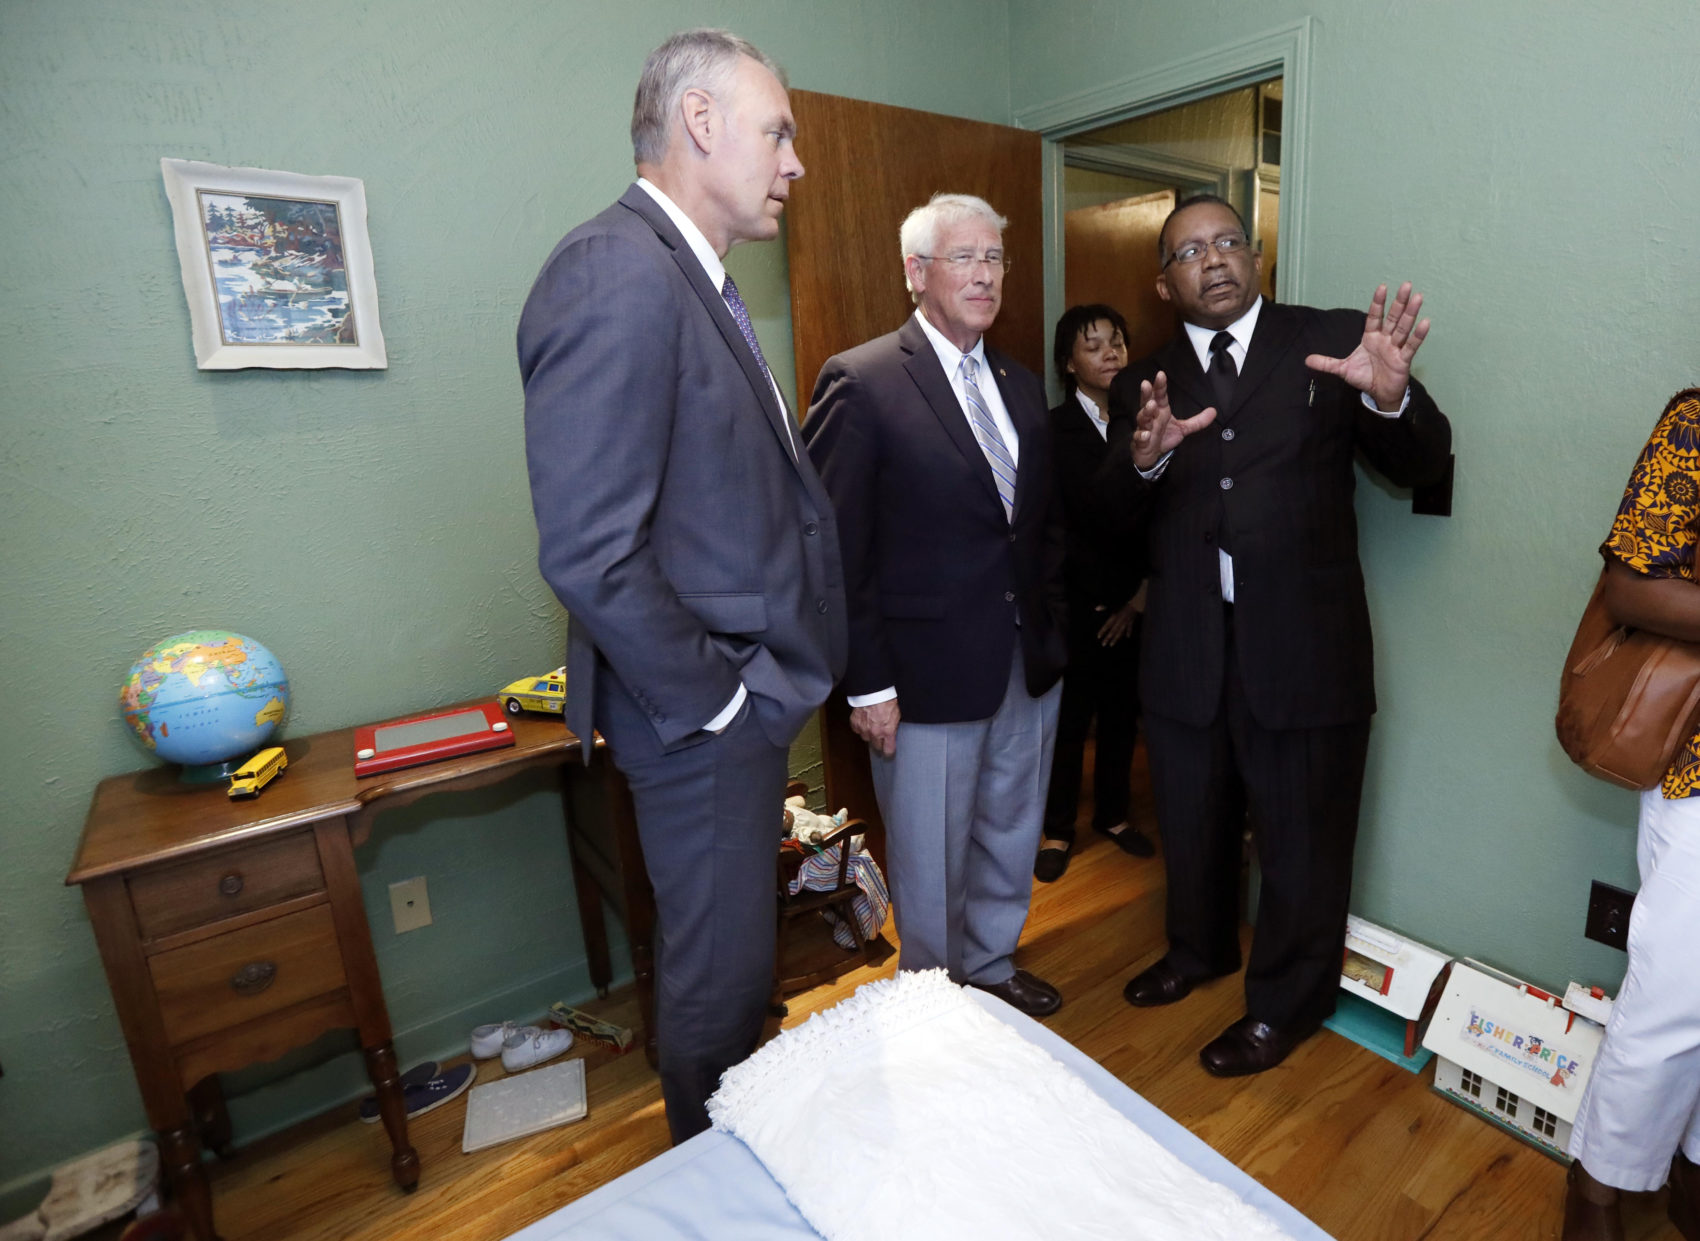 Charles Murchinson of Jackson, right, tells U.S. Sen. Roger Wicker, R-Miss., center and Interior Secretary Ryan Zinke, about the makeup of the neighborhood that the late civil rights activist Medgar and Myrlie Evers lived at in Jackson, Miss., Friday, Aug. 3, 2018. (Rogelio V. Solis/AP)